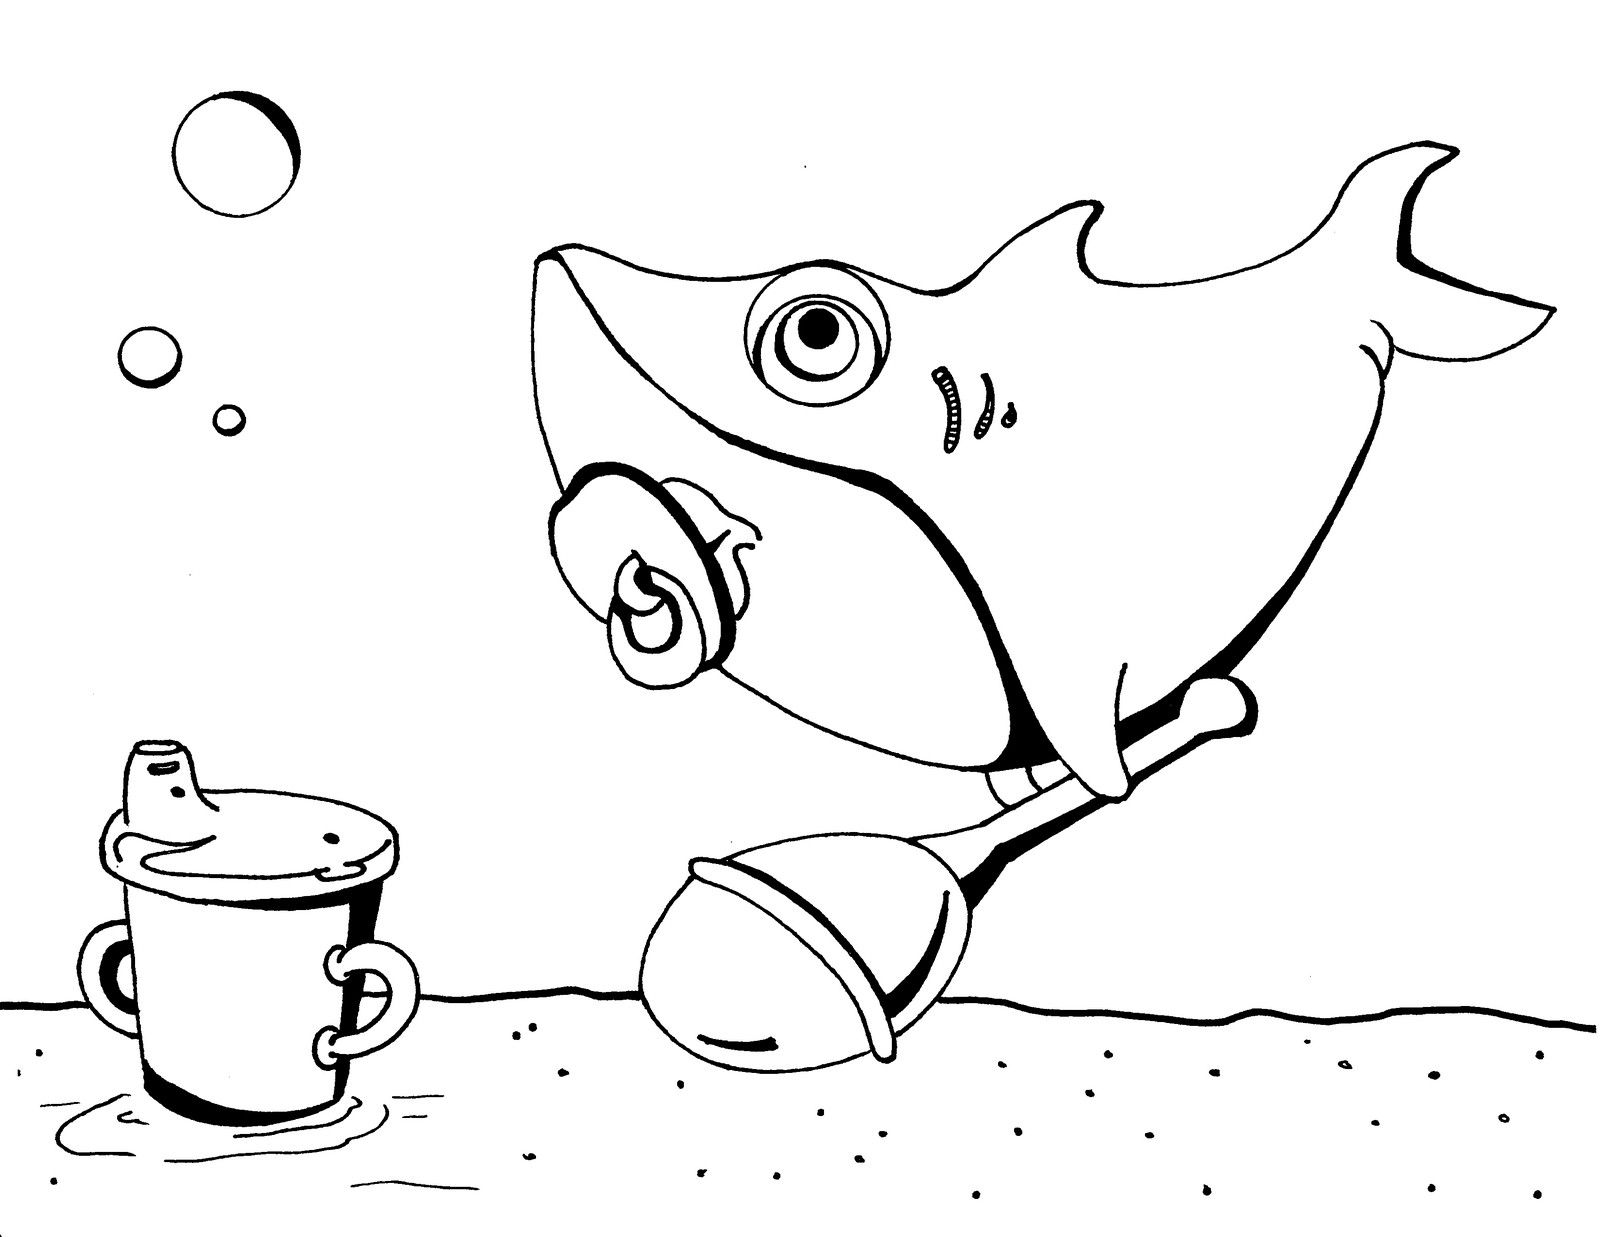 baby shark coloring page baby shark pinkfong coloring pages is the first book to coloring shark page baby